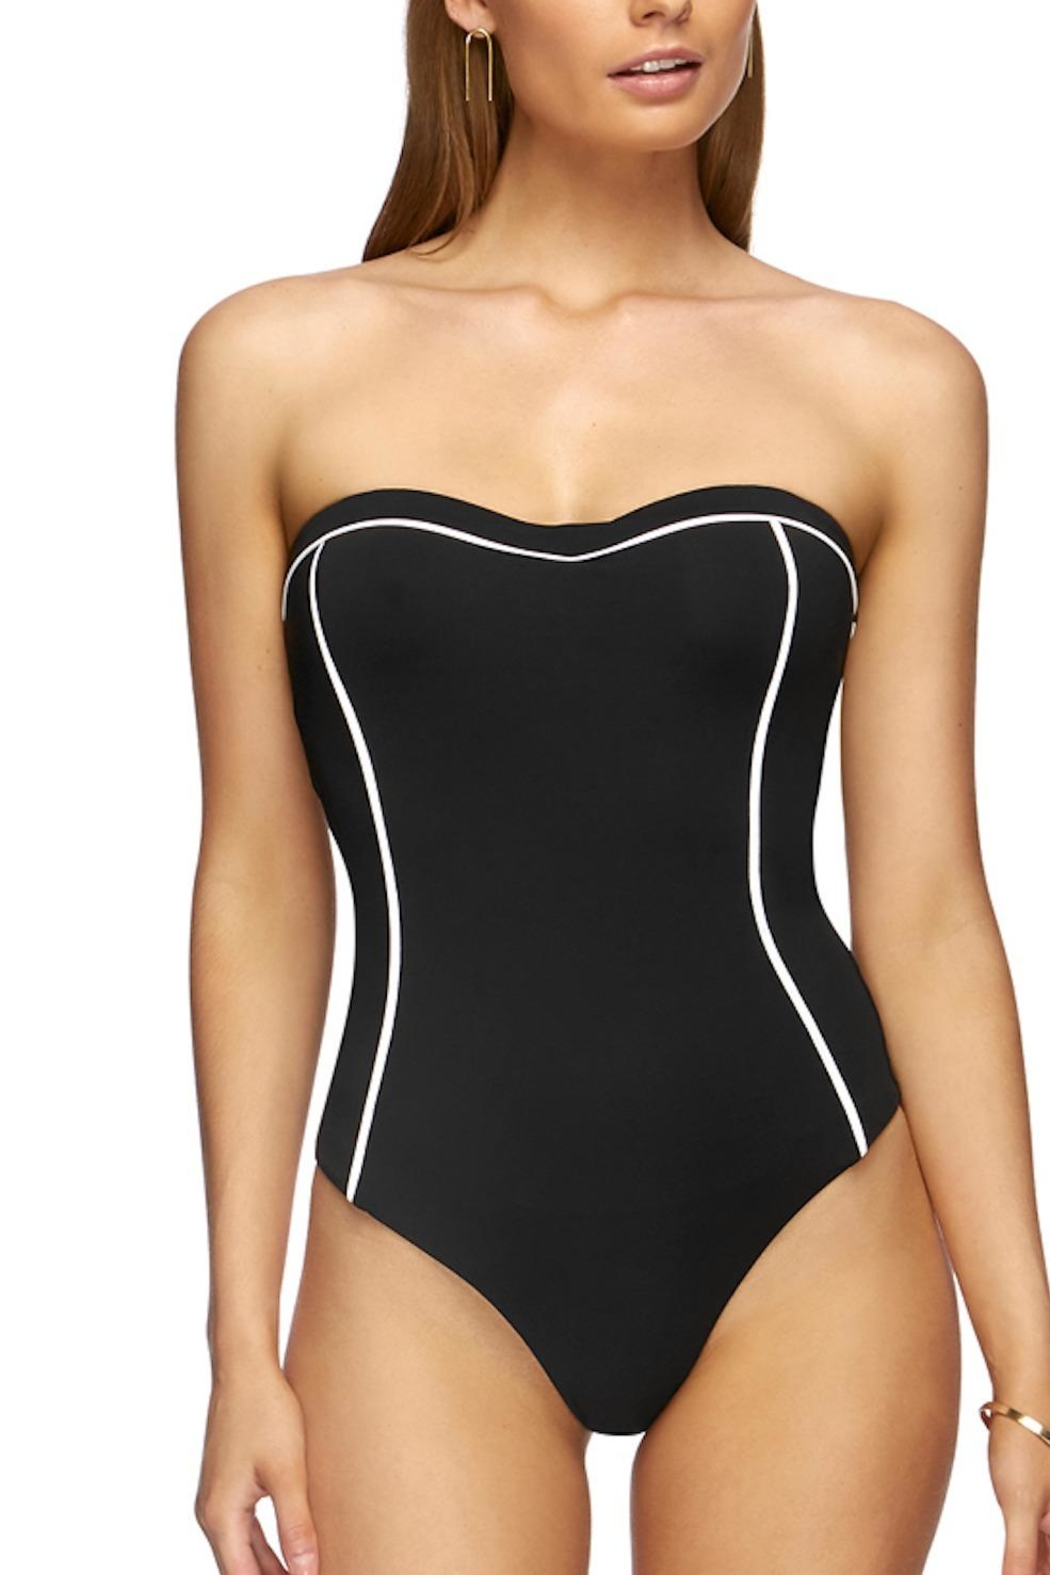 Jets by Jessika Allen J Black/white Bandeau One-Piece - Main Image